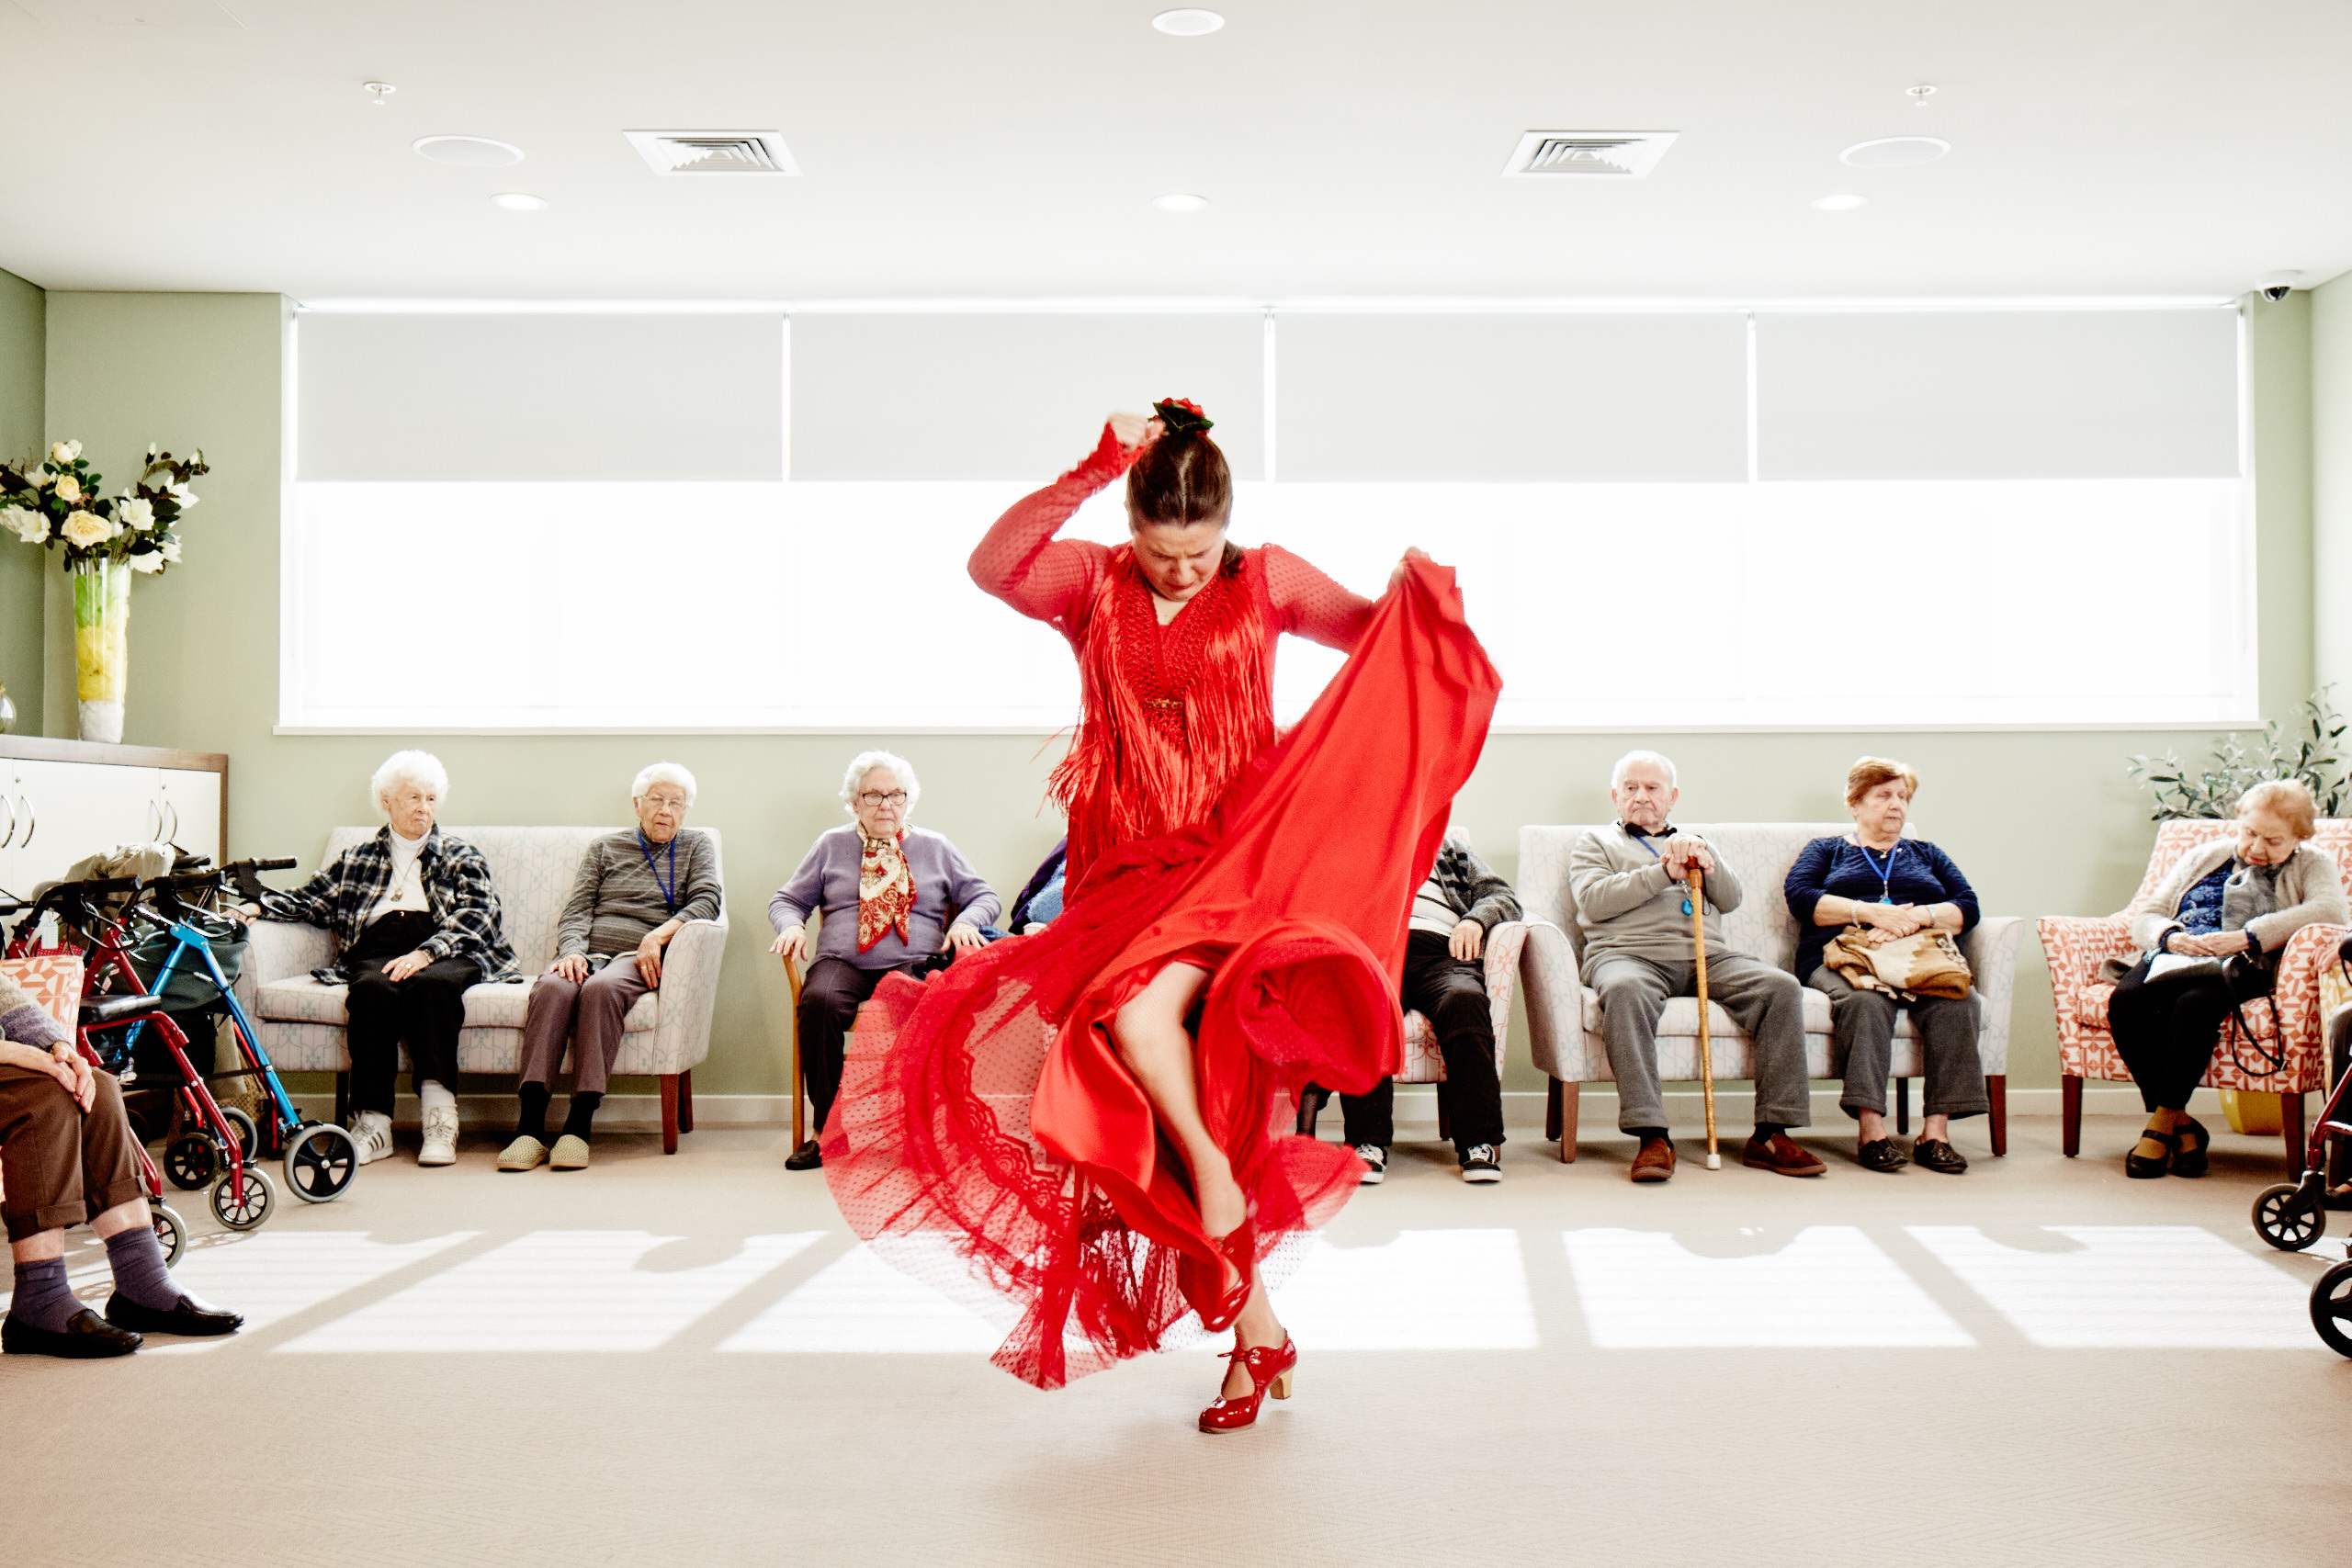 Woman in a red dress dancing in front of seated elderly people for Blacktown's Magnify festival.